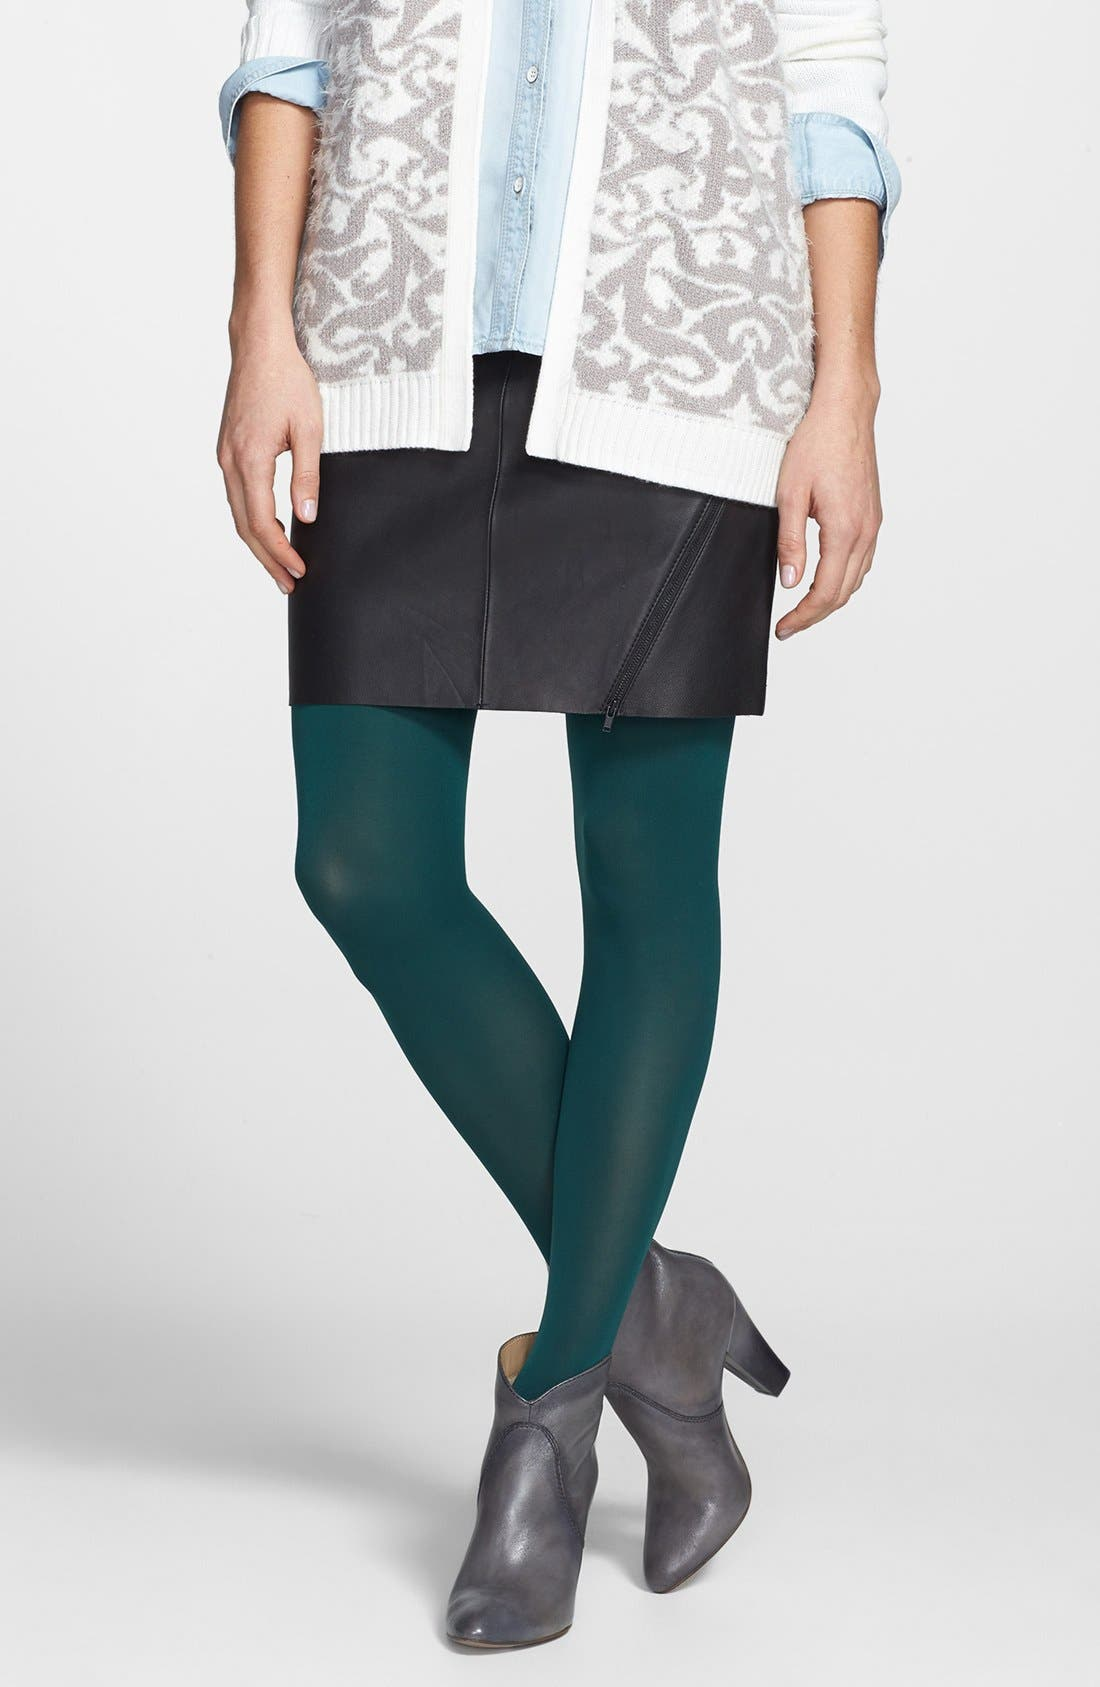 Alternate Image 1 Selected - Nordstrom 'Everyday' Opaque Tights (2 for $24)